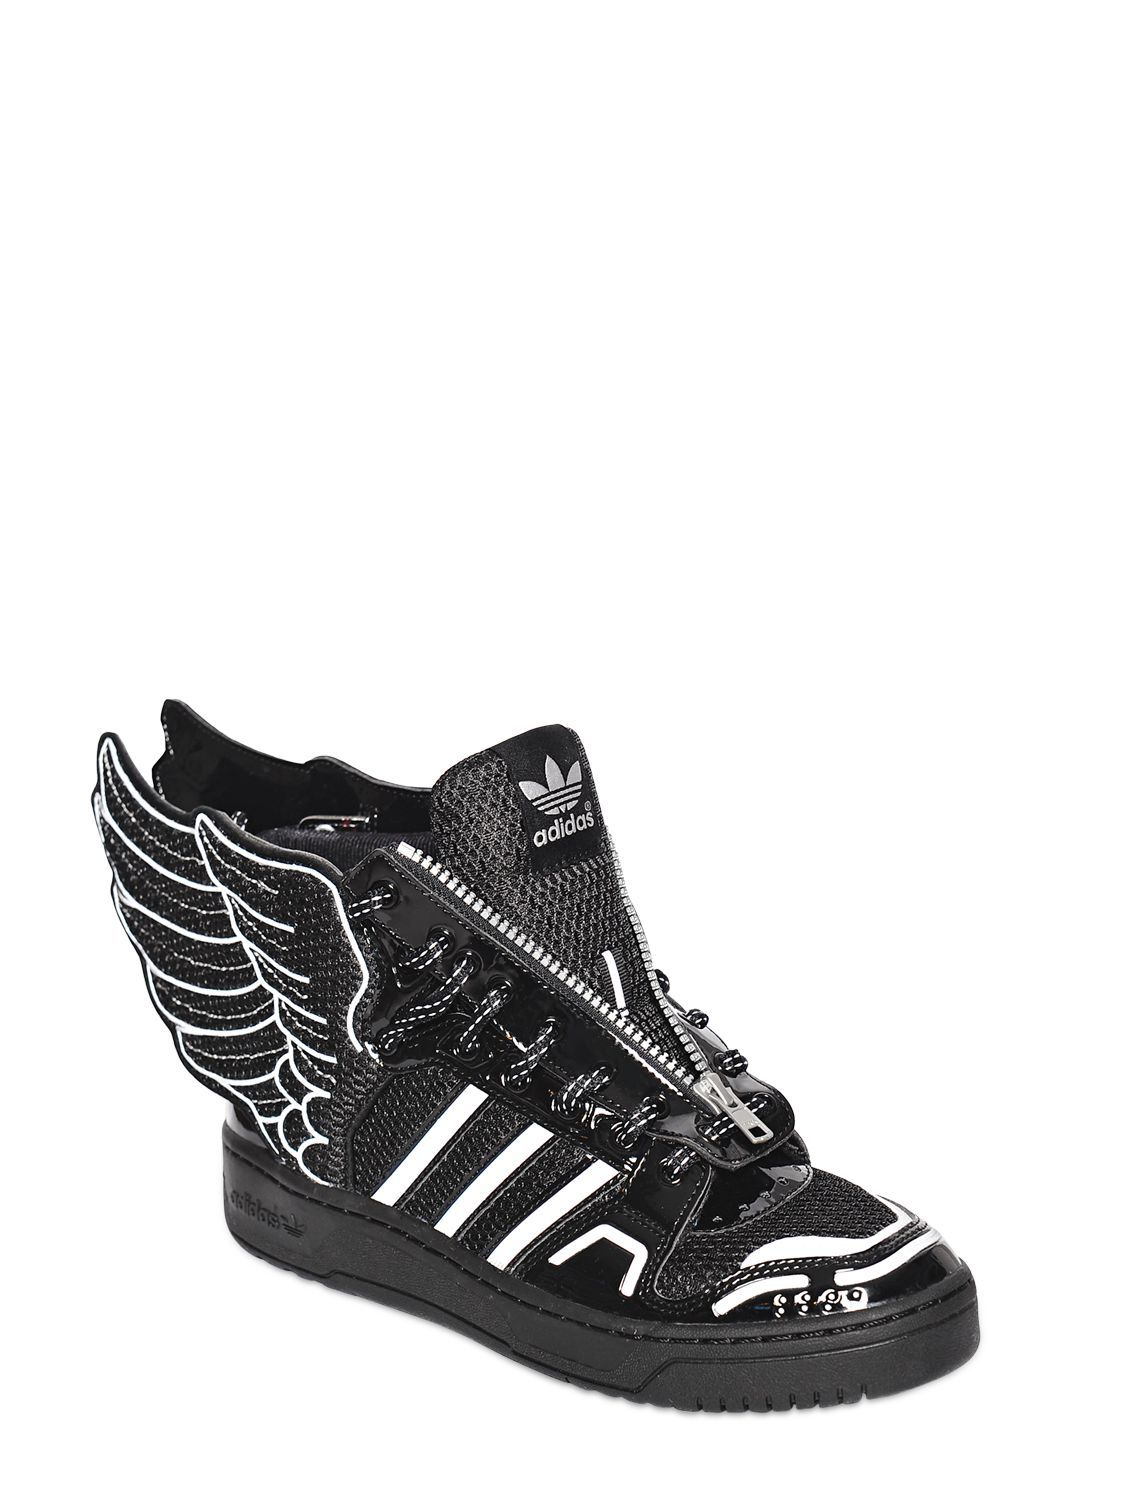 finest selection abc42 f04ba ジェレミースコット(JEREMY SCOTT)ブラックポリウレタンスニーカー ADIDAS BY JEREMY SCOTT - JS WINGS  2.0 MESH HIGH TOP SNEAKERS - BLACK